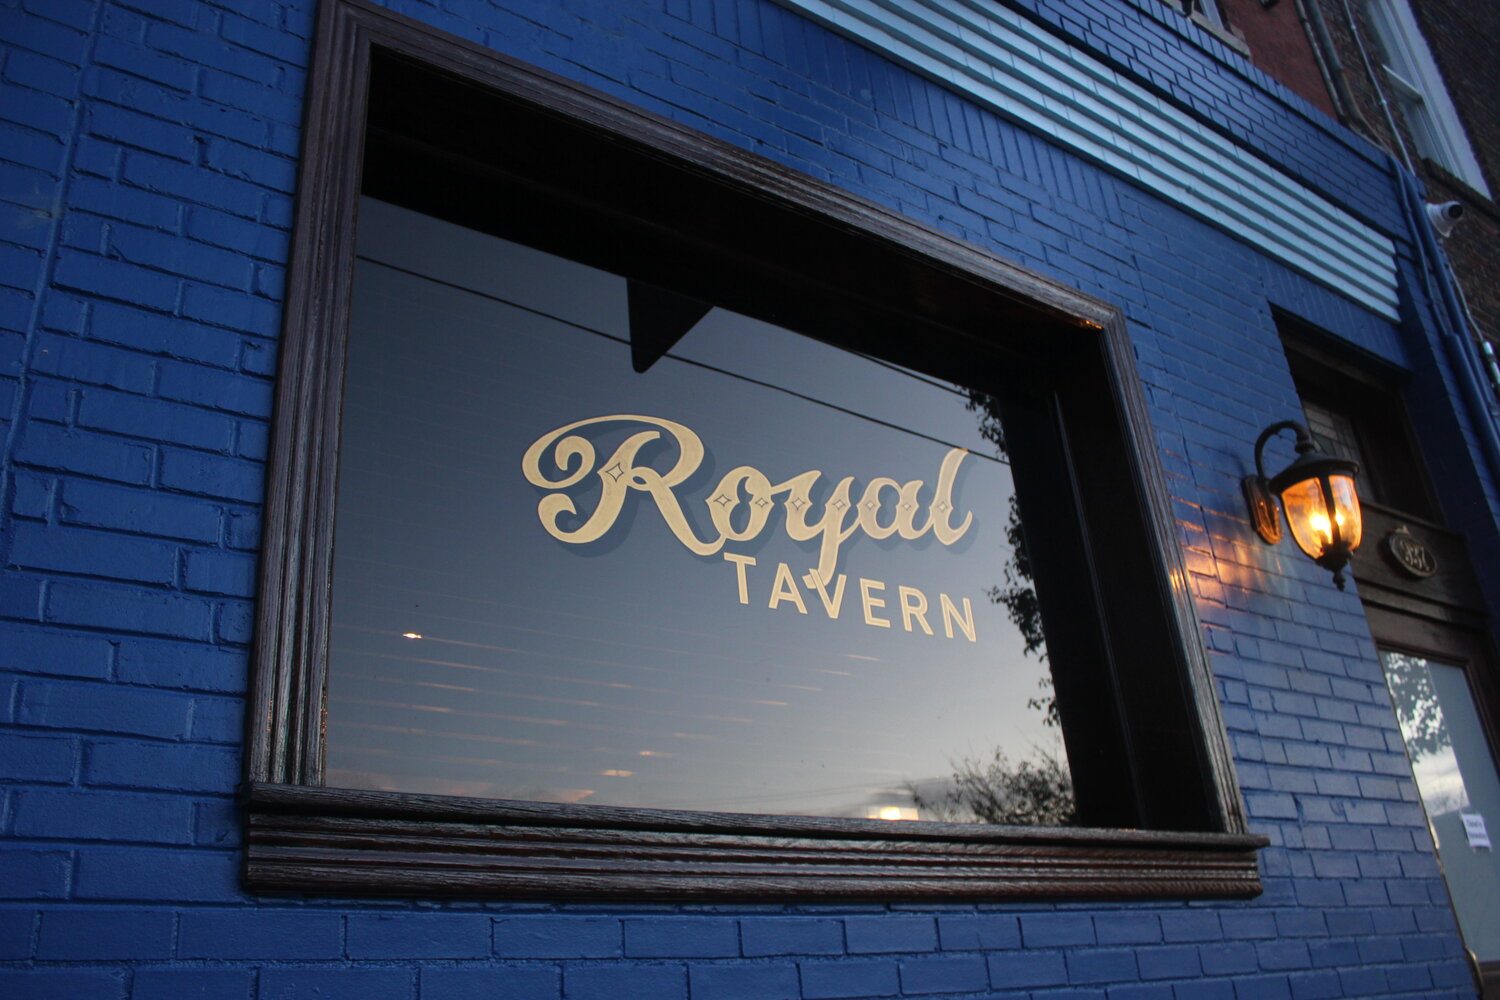 blue exterior of bar with sign in window that says royal tavern